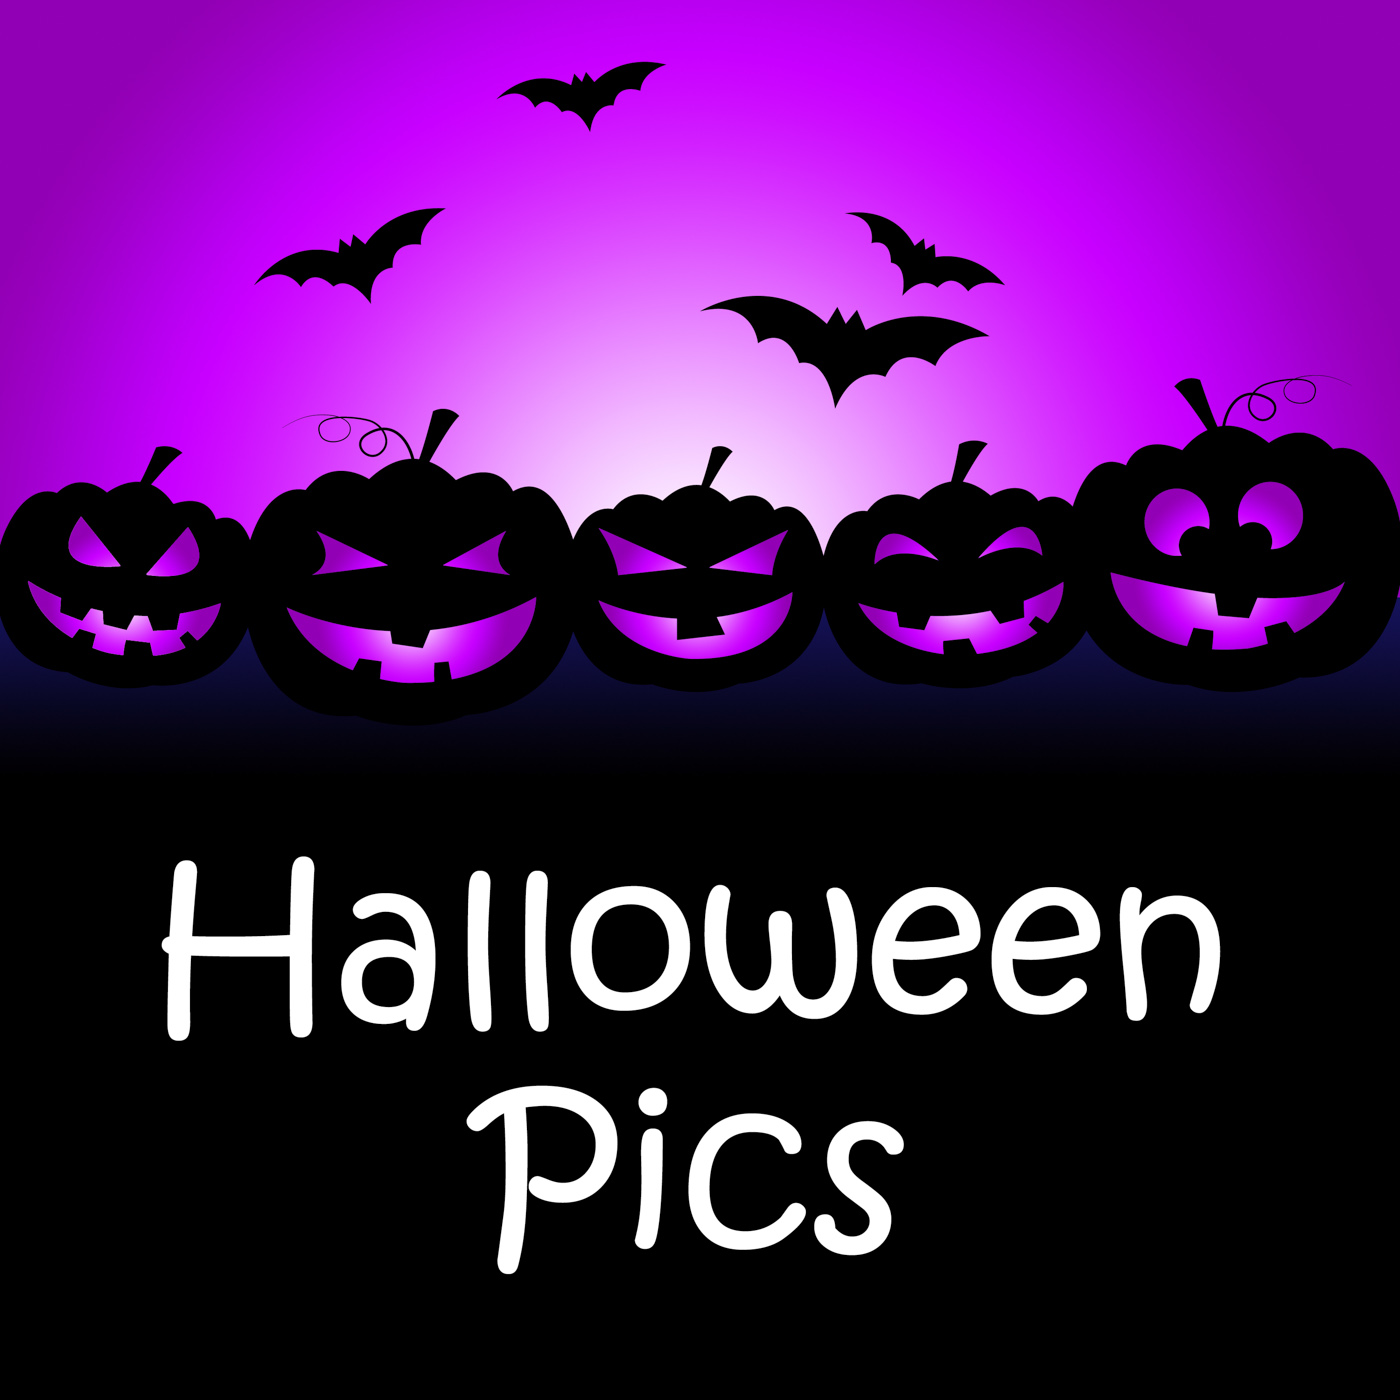 Halloween pics indicates trick or treat and autumn photo